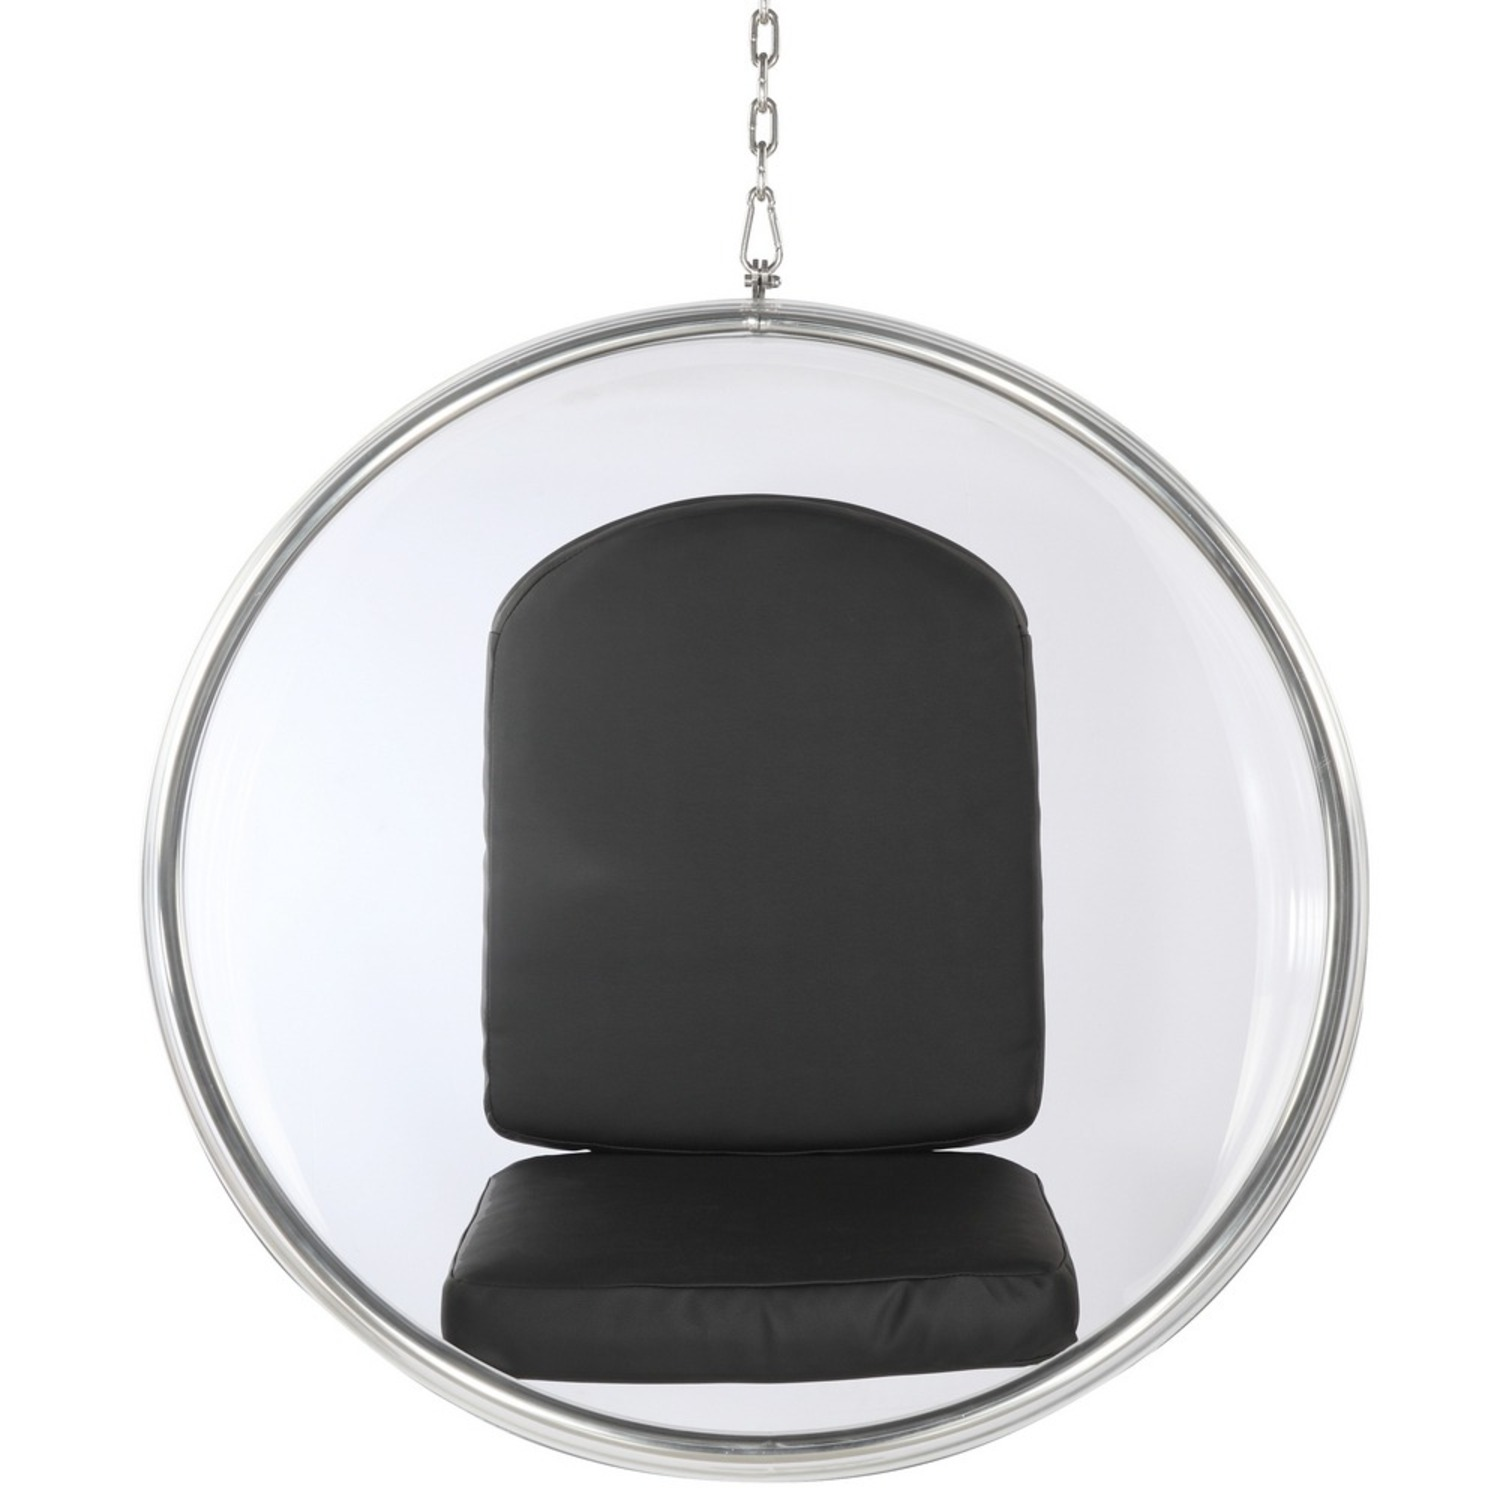 Hanging Chair In Clear Acrylic & Black PU Leather - image-5